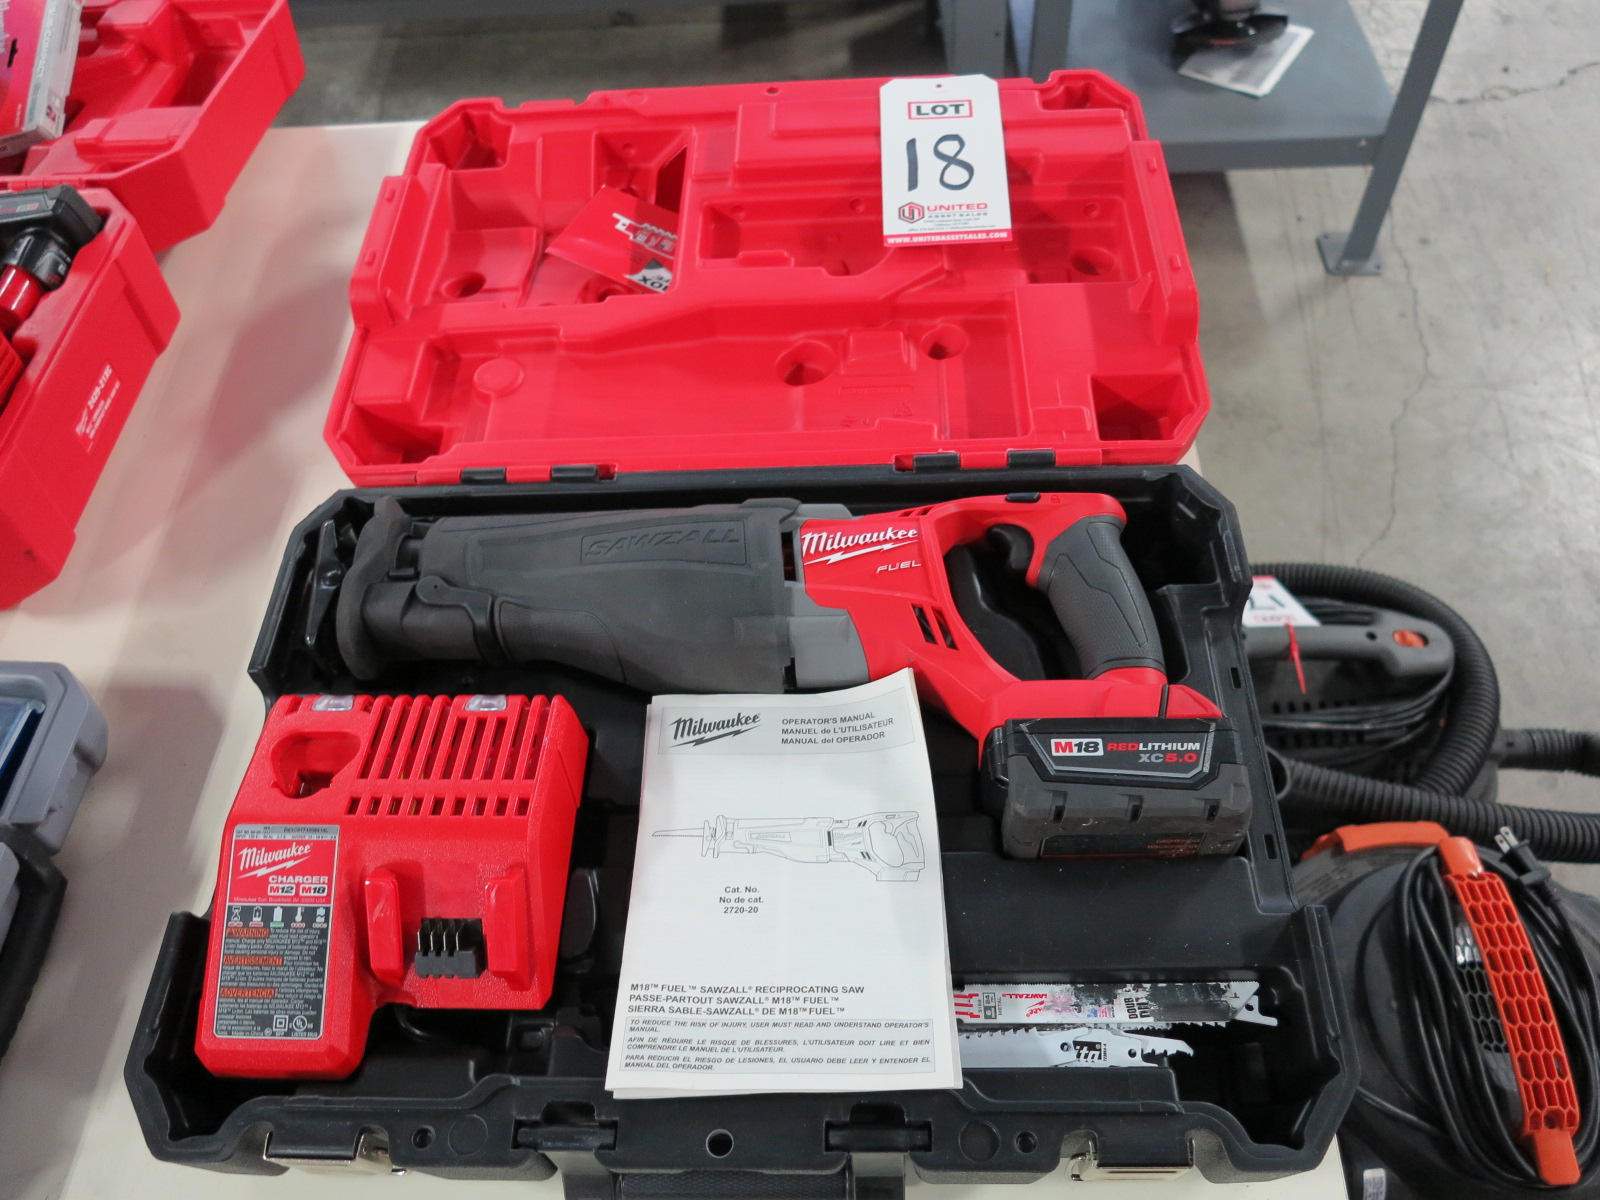 Lot 18 - MILWAUKEE M18 FUEL SAWZALL, W/ BATTERY, CHARGER, CASE, CAT. NO. 2720-20, 18V